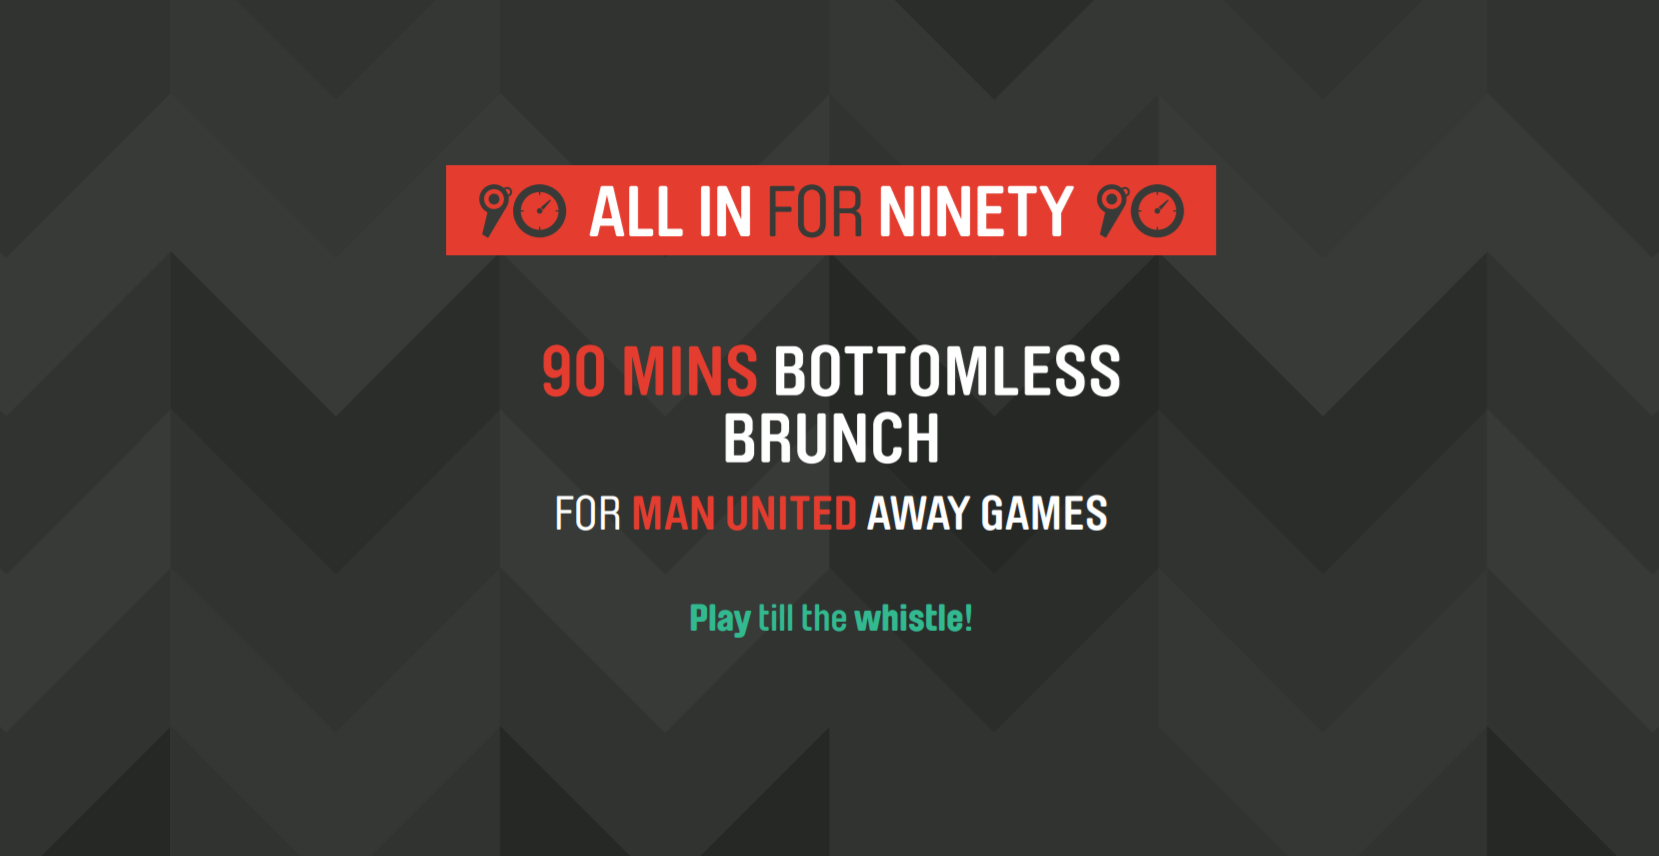 All In For Ninety - Bottomless Brunch